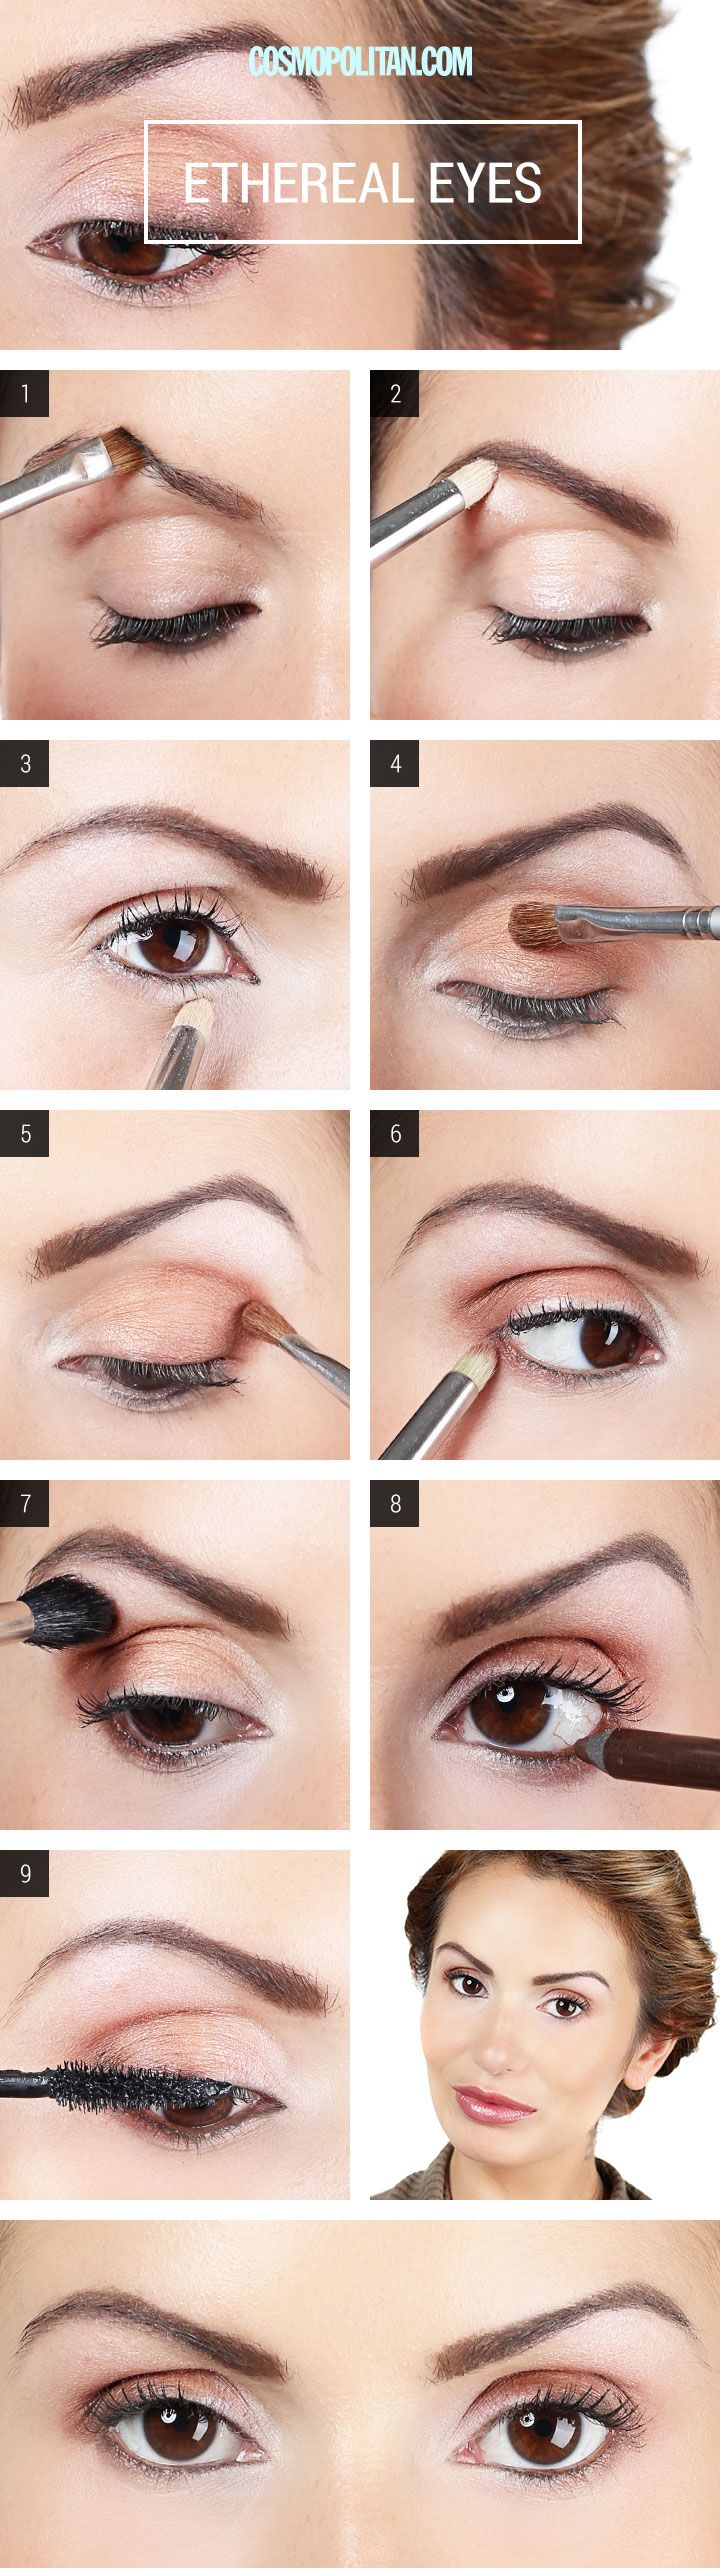 Makeup How-To: Ethereal Eyes Makeup How To Apply Champagne Eyeshadow - Eye Makeup Tutorial - Cosmopolitan